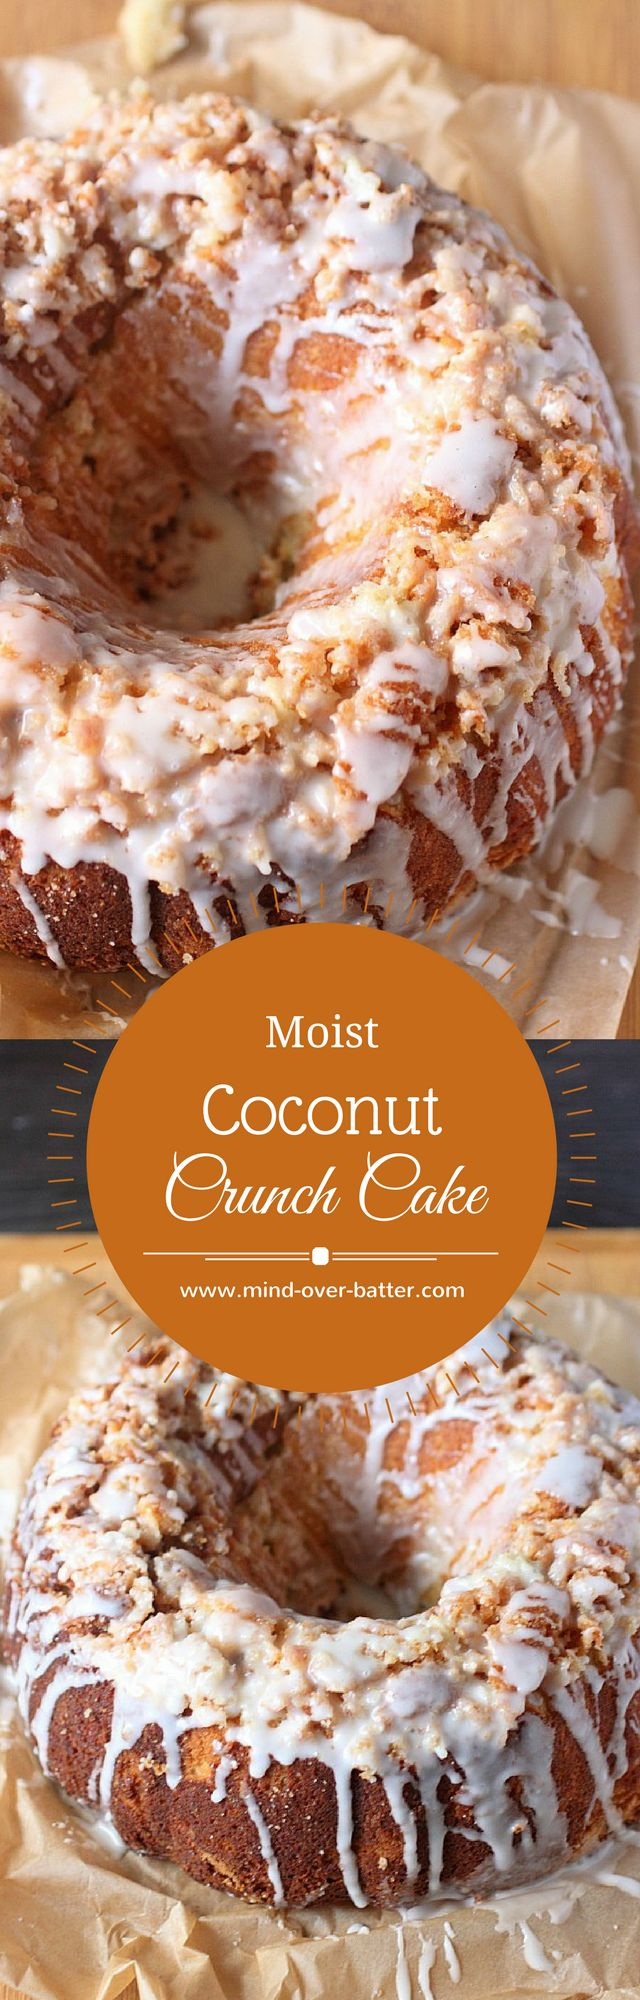 best 25 moist coconut cake recipe ideas on pinterest recipe for